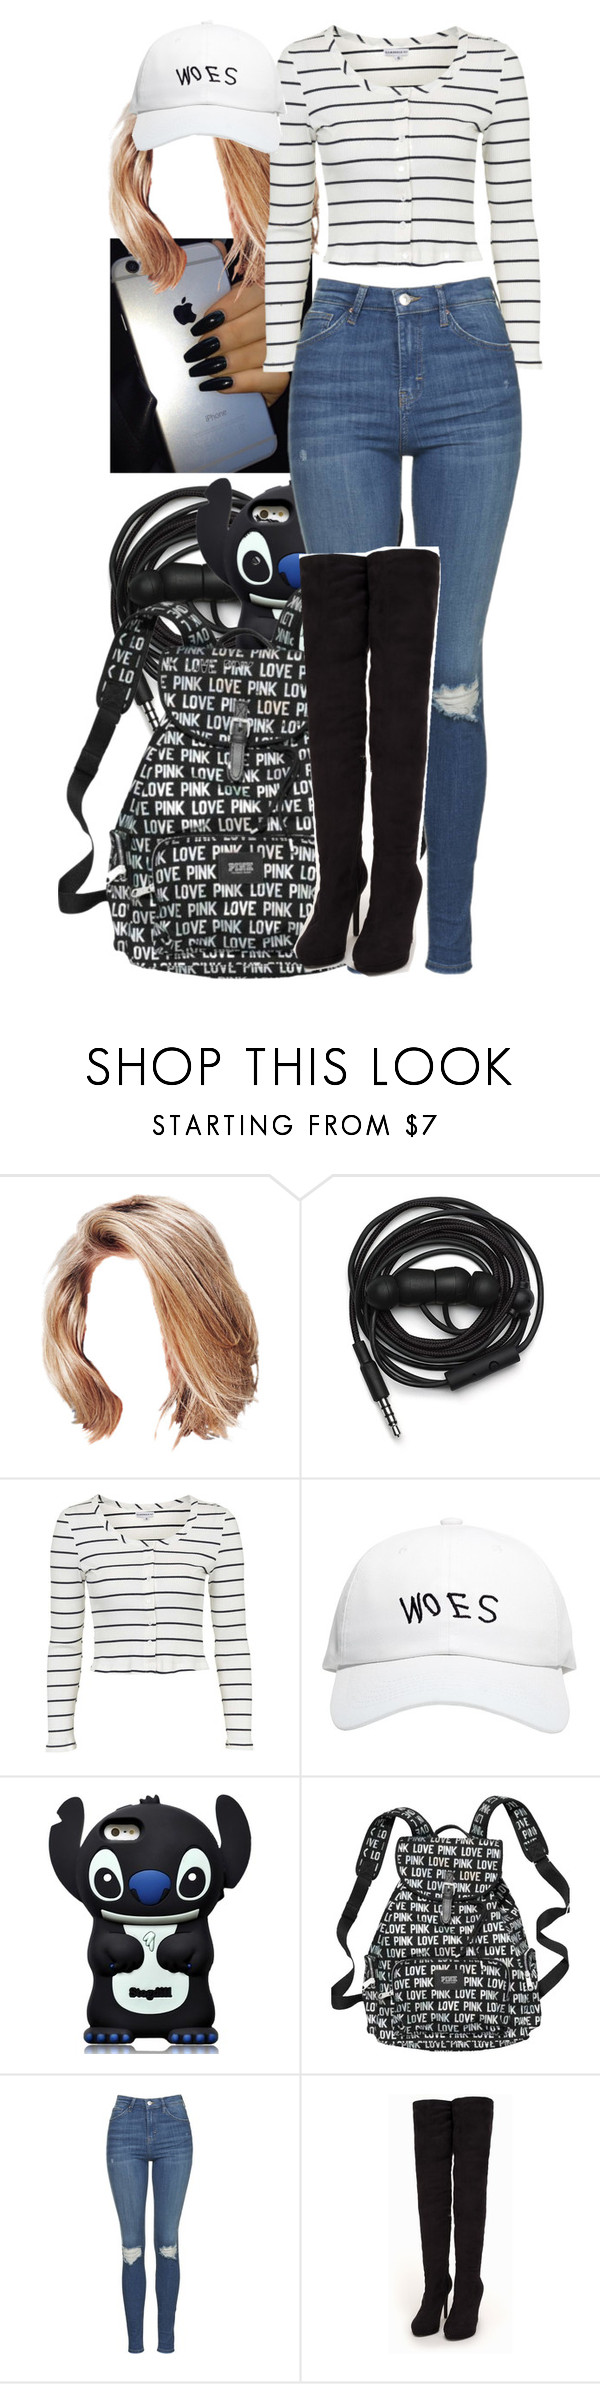 """School"" by aaliyahsalmon on Polyvore featuring Urbanears, Topshop, October's Very Own and Nly Shoes"